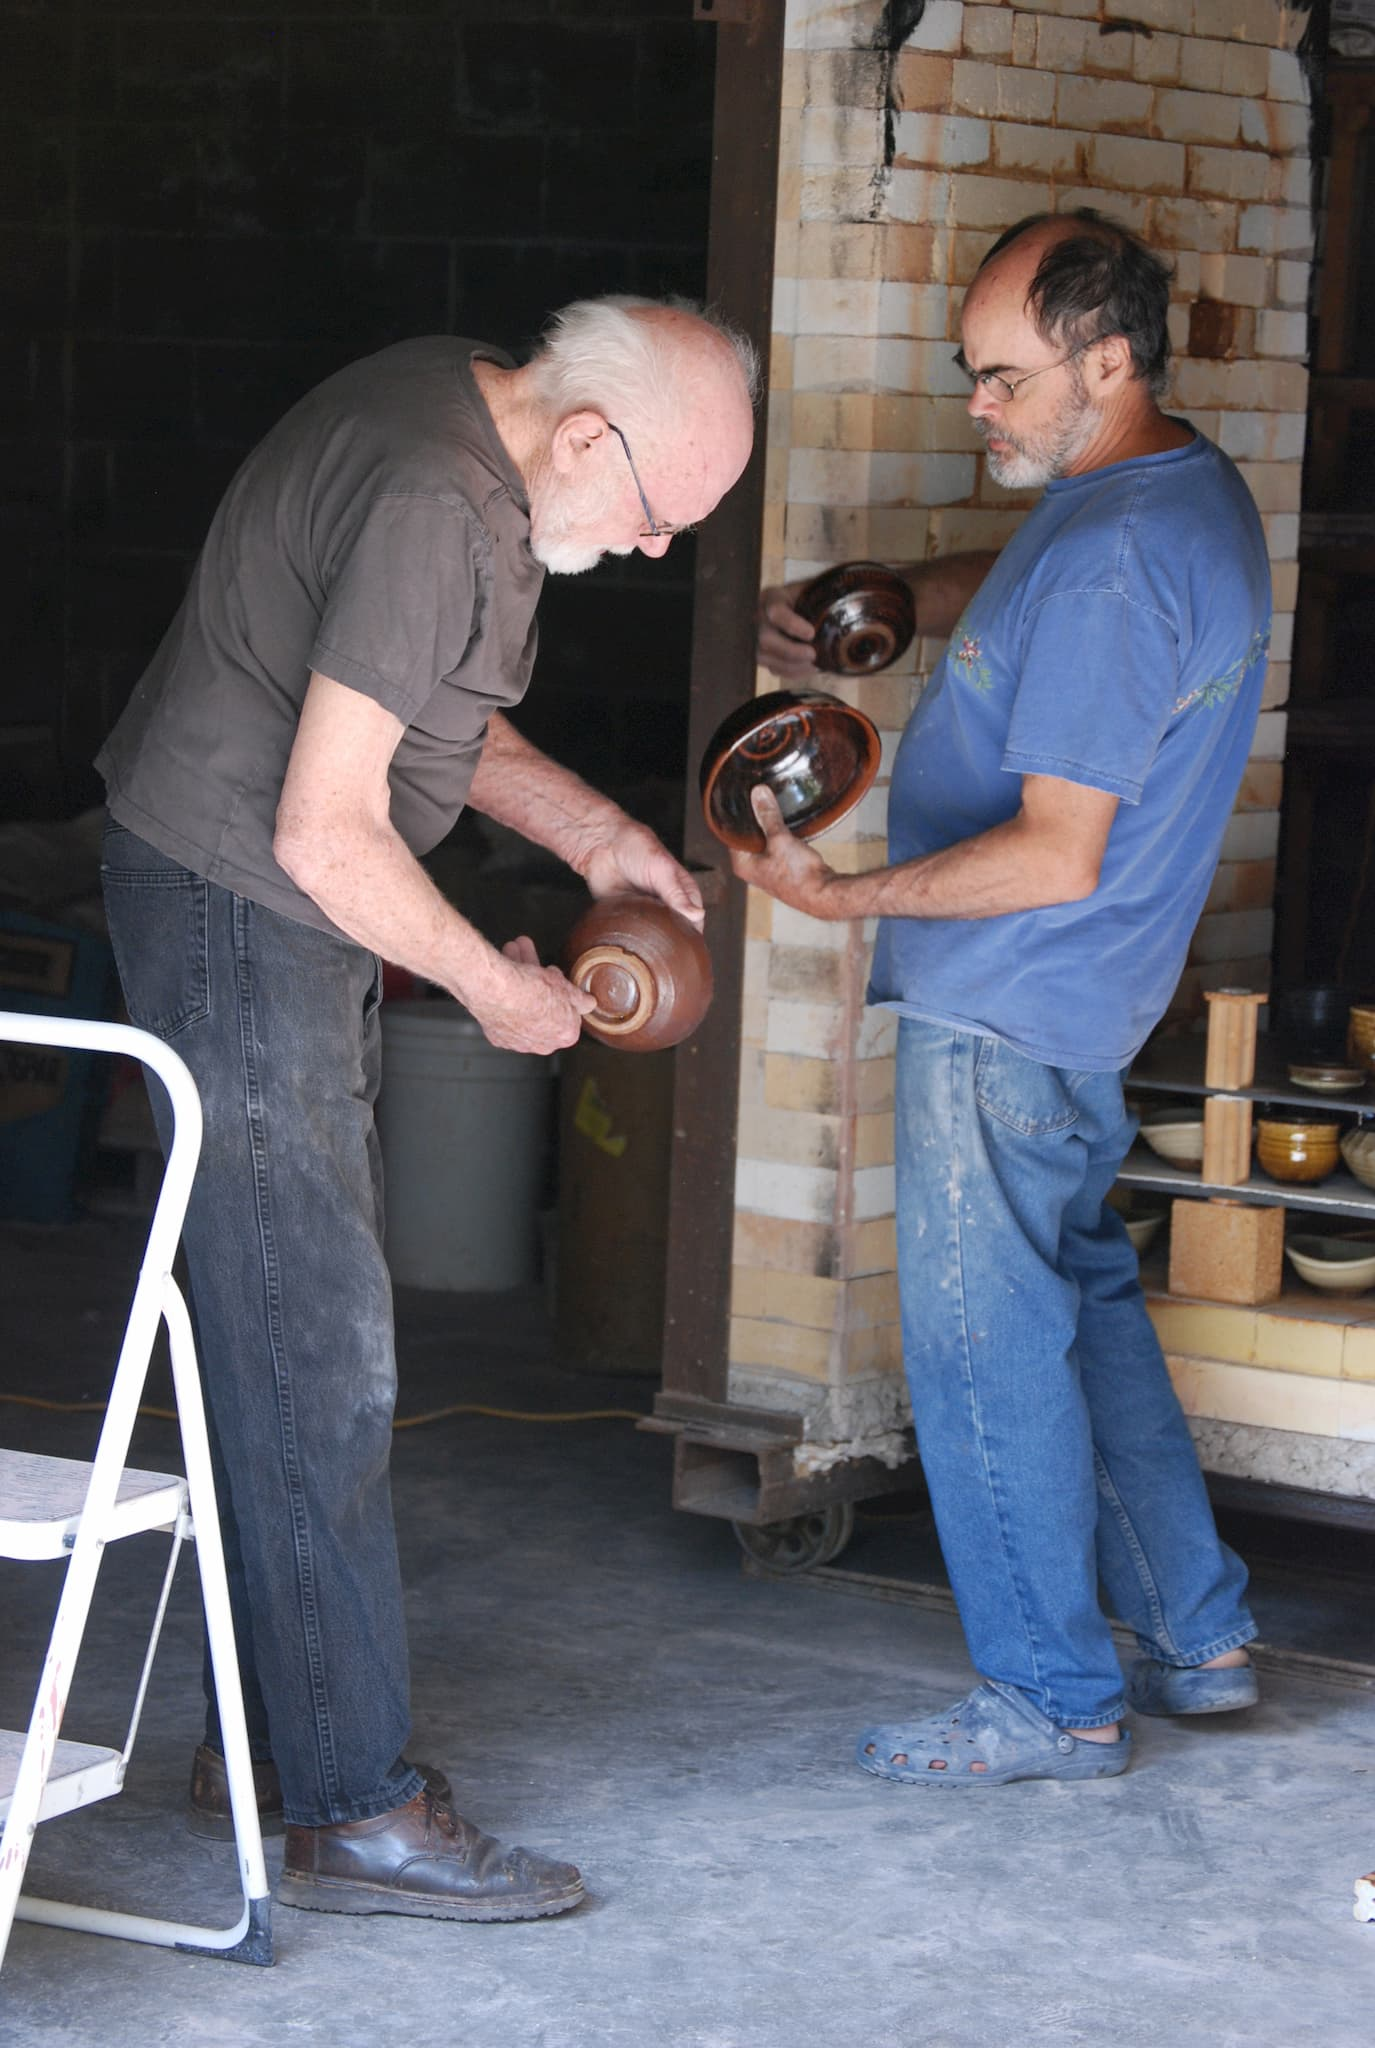 Warren MacKenzie & Guillermo Cuellar inspect the results of a firing, 2015. Courtesy of Guillermo Cuellar